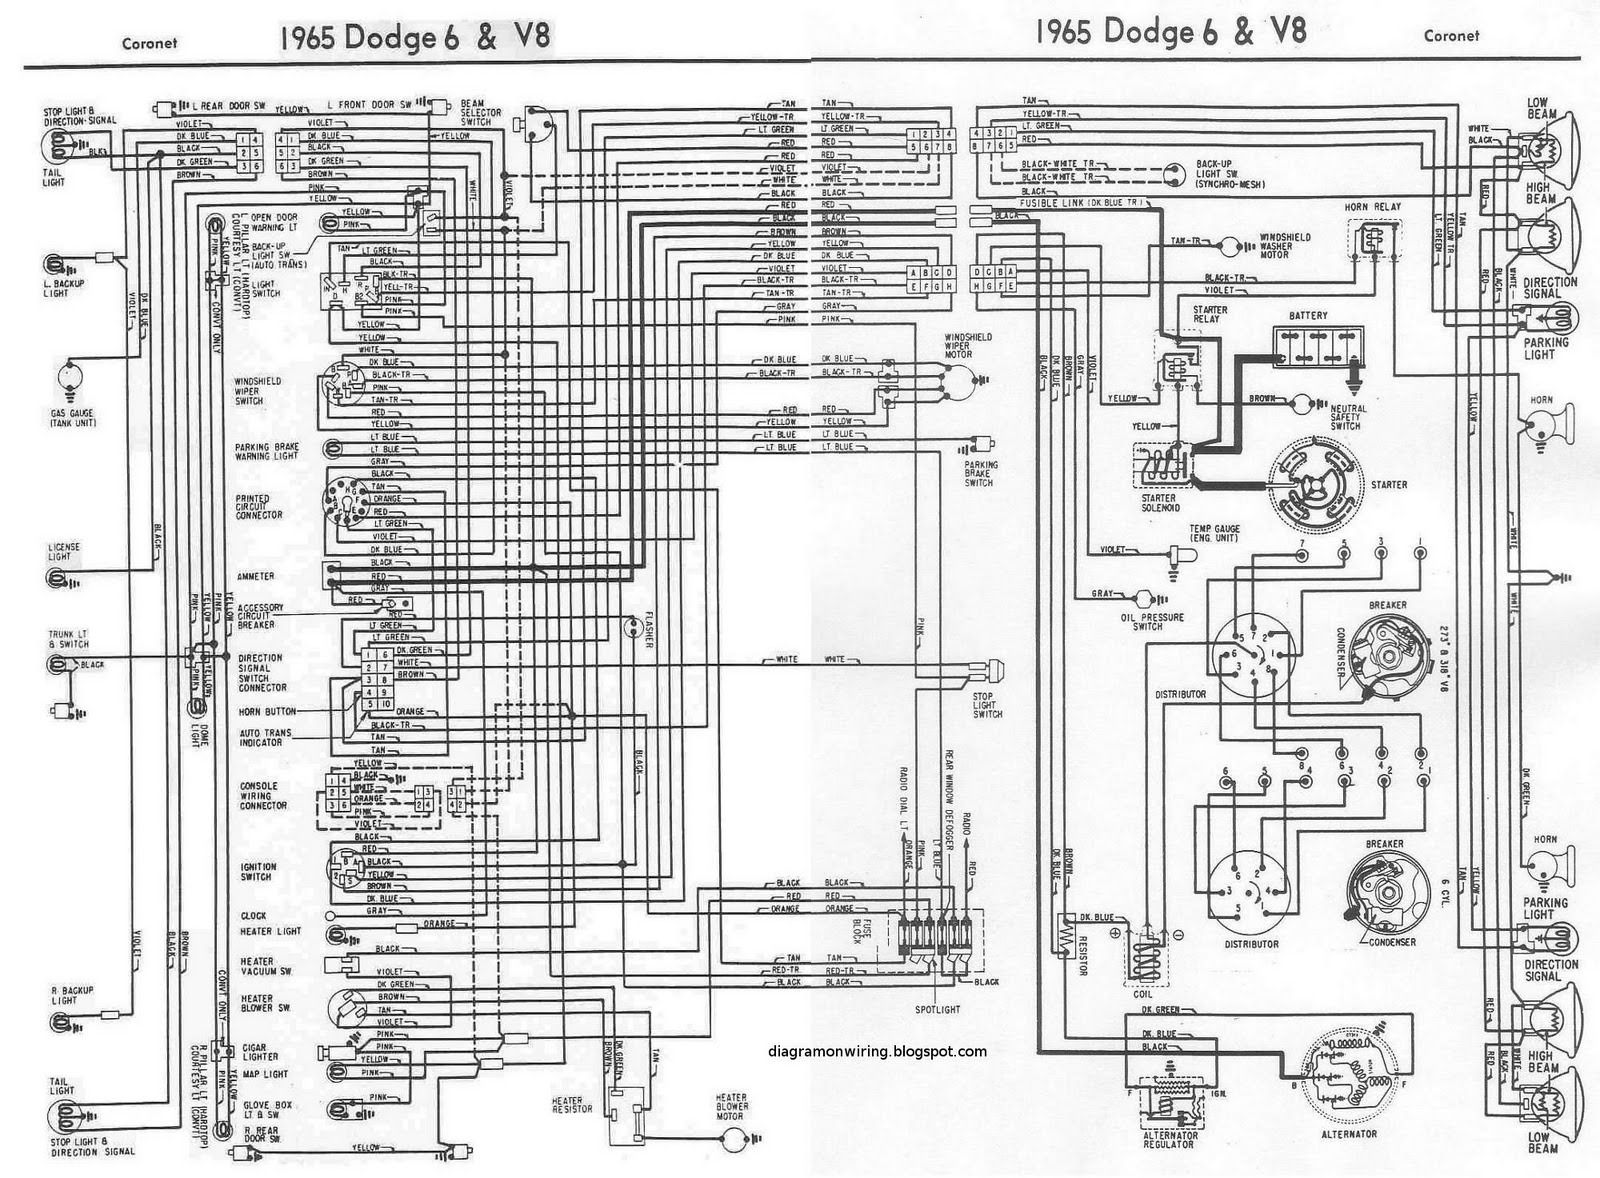 1974 cuda wiring diagram 1971 cuda wiring diagram - wiring diagram 1973 plymouth cuda wiring diagram